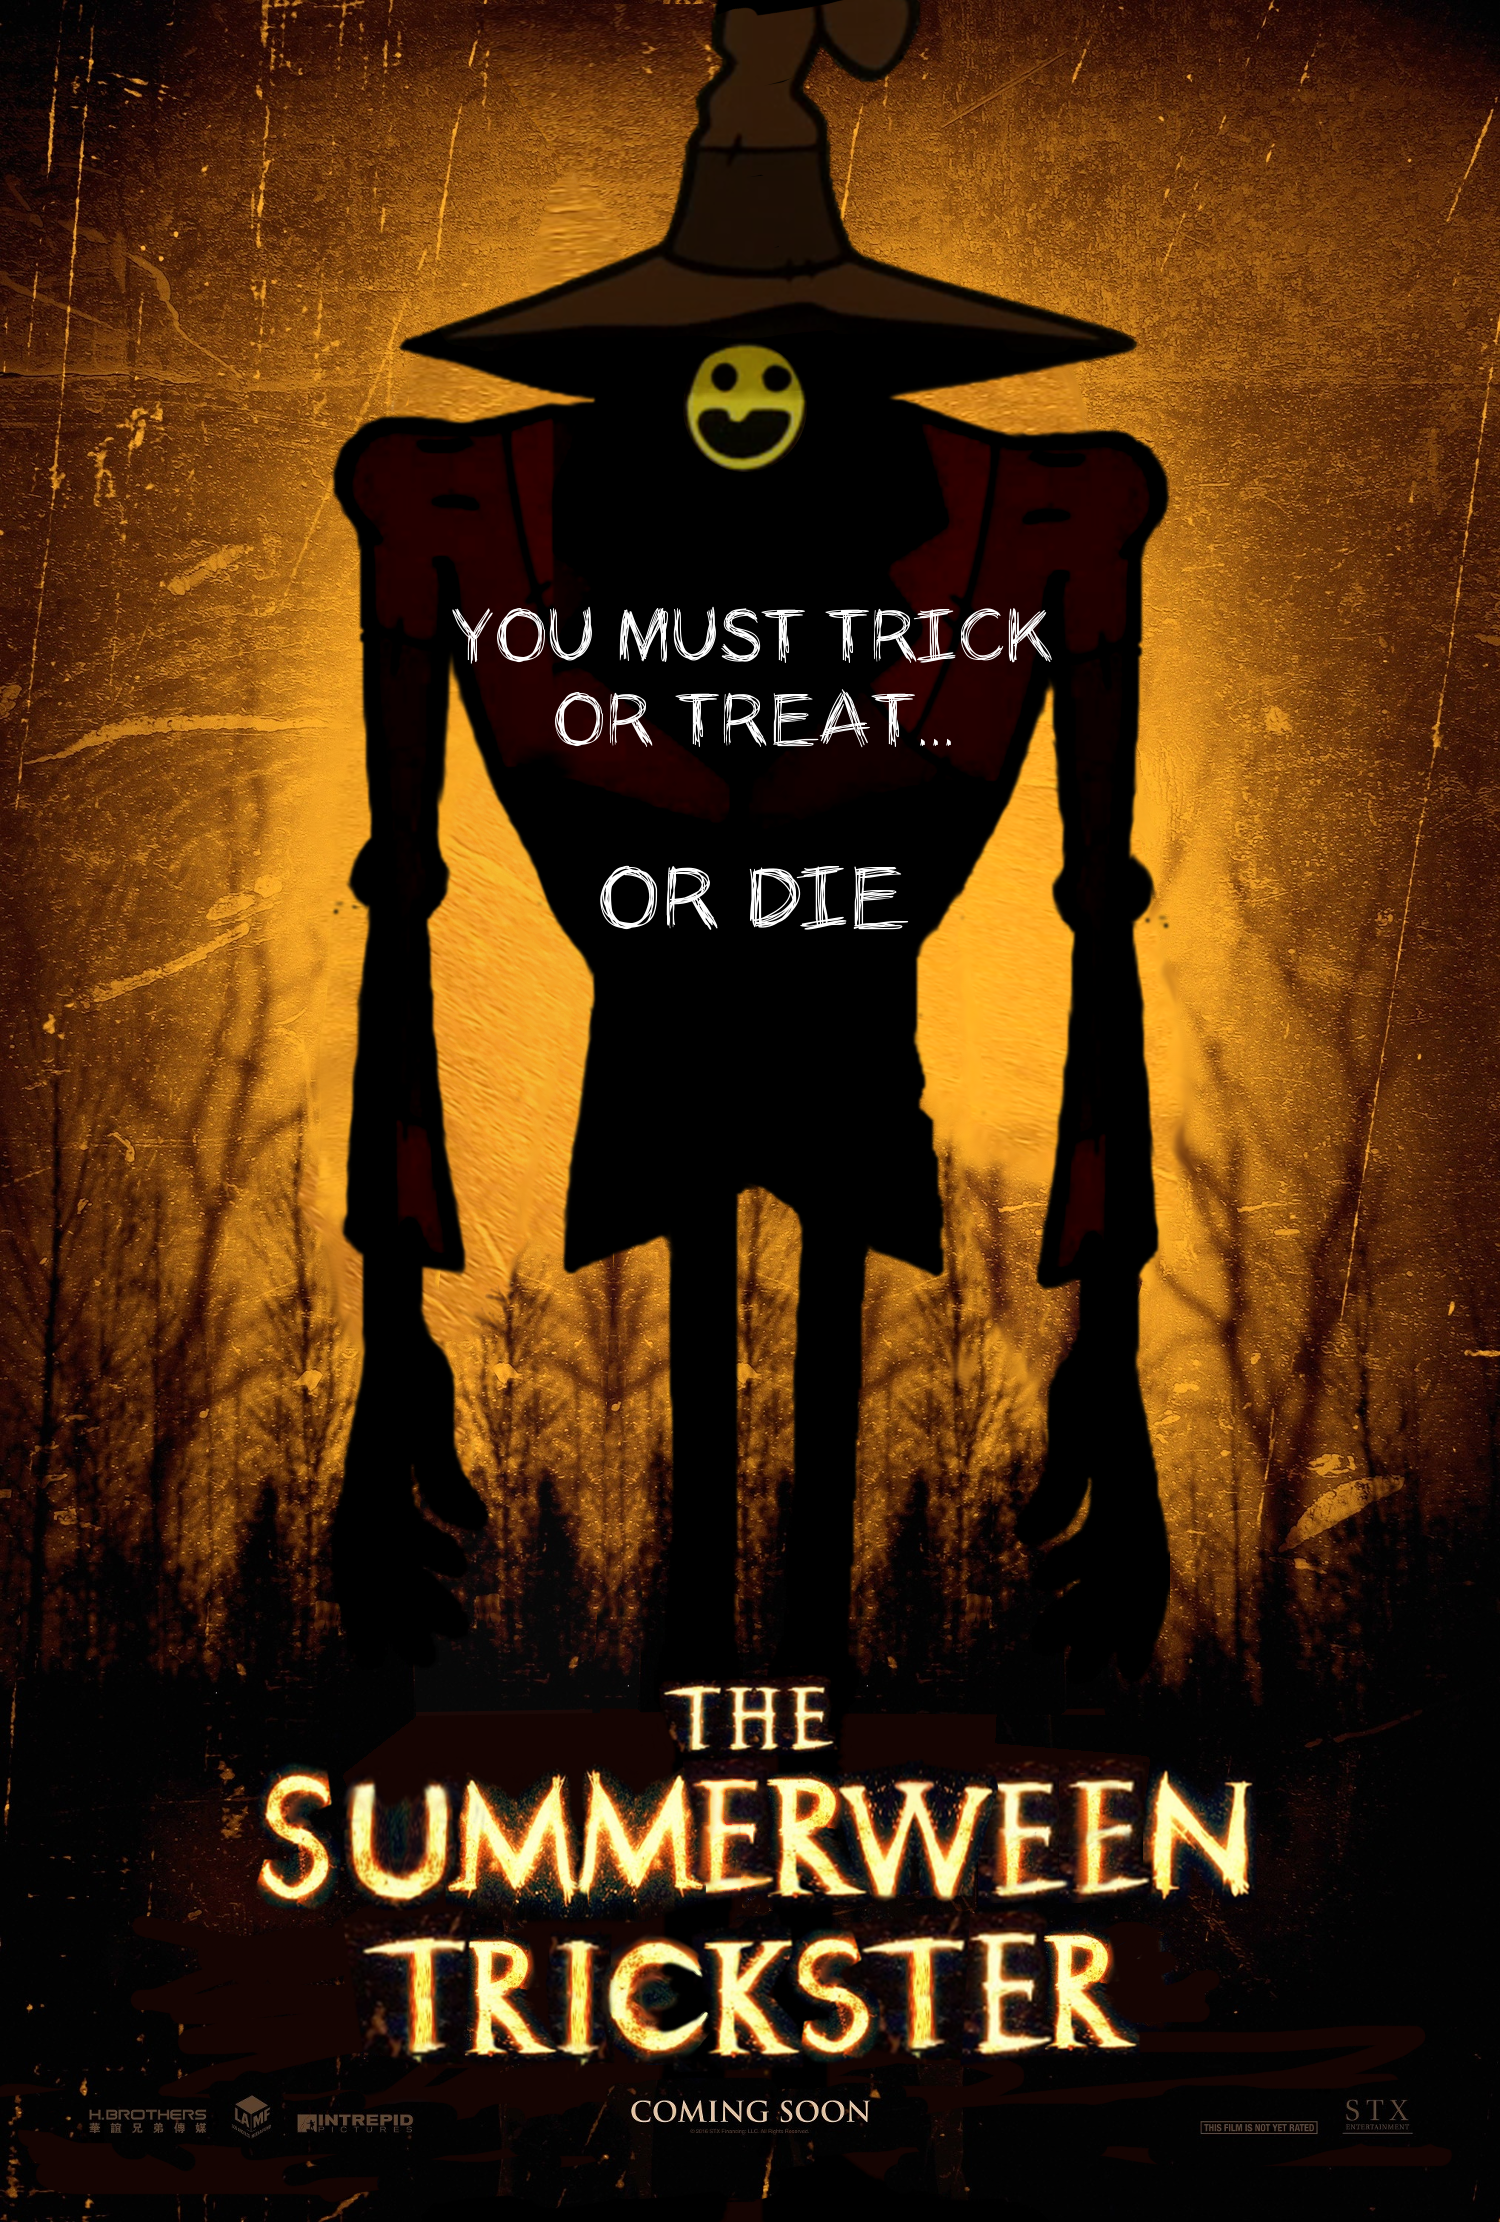 the summerween trickster bye bye man poster parodies know your meme